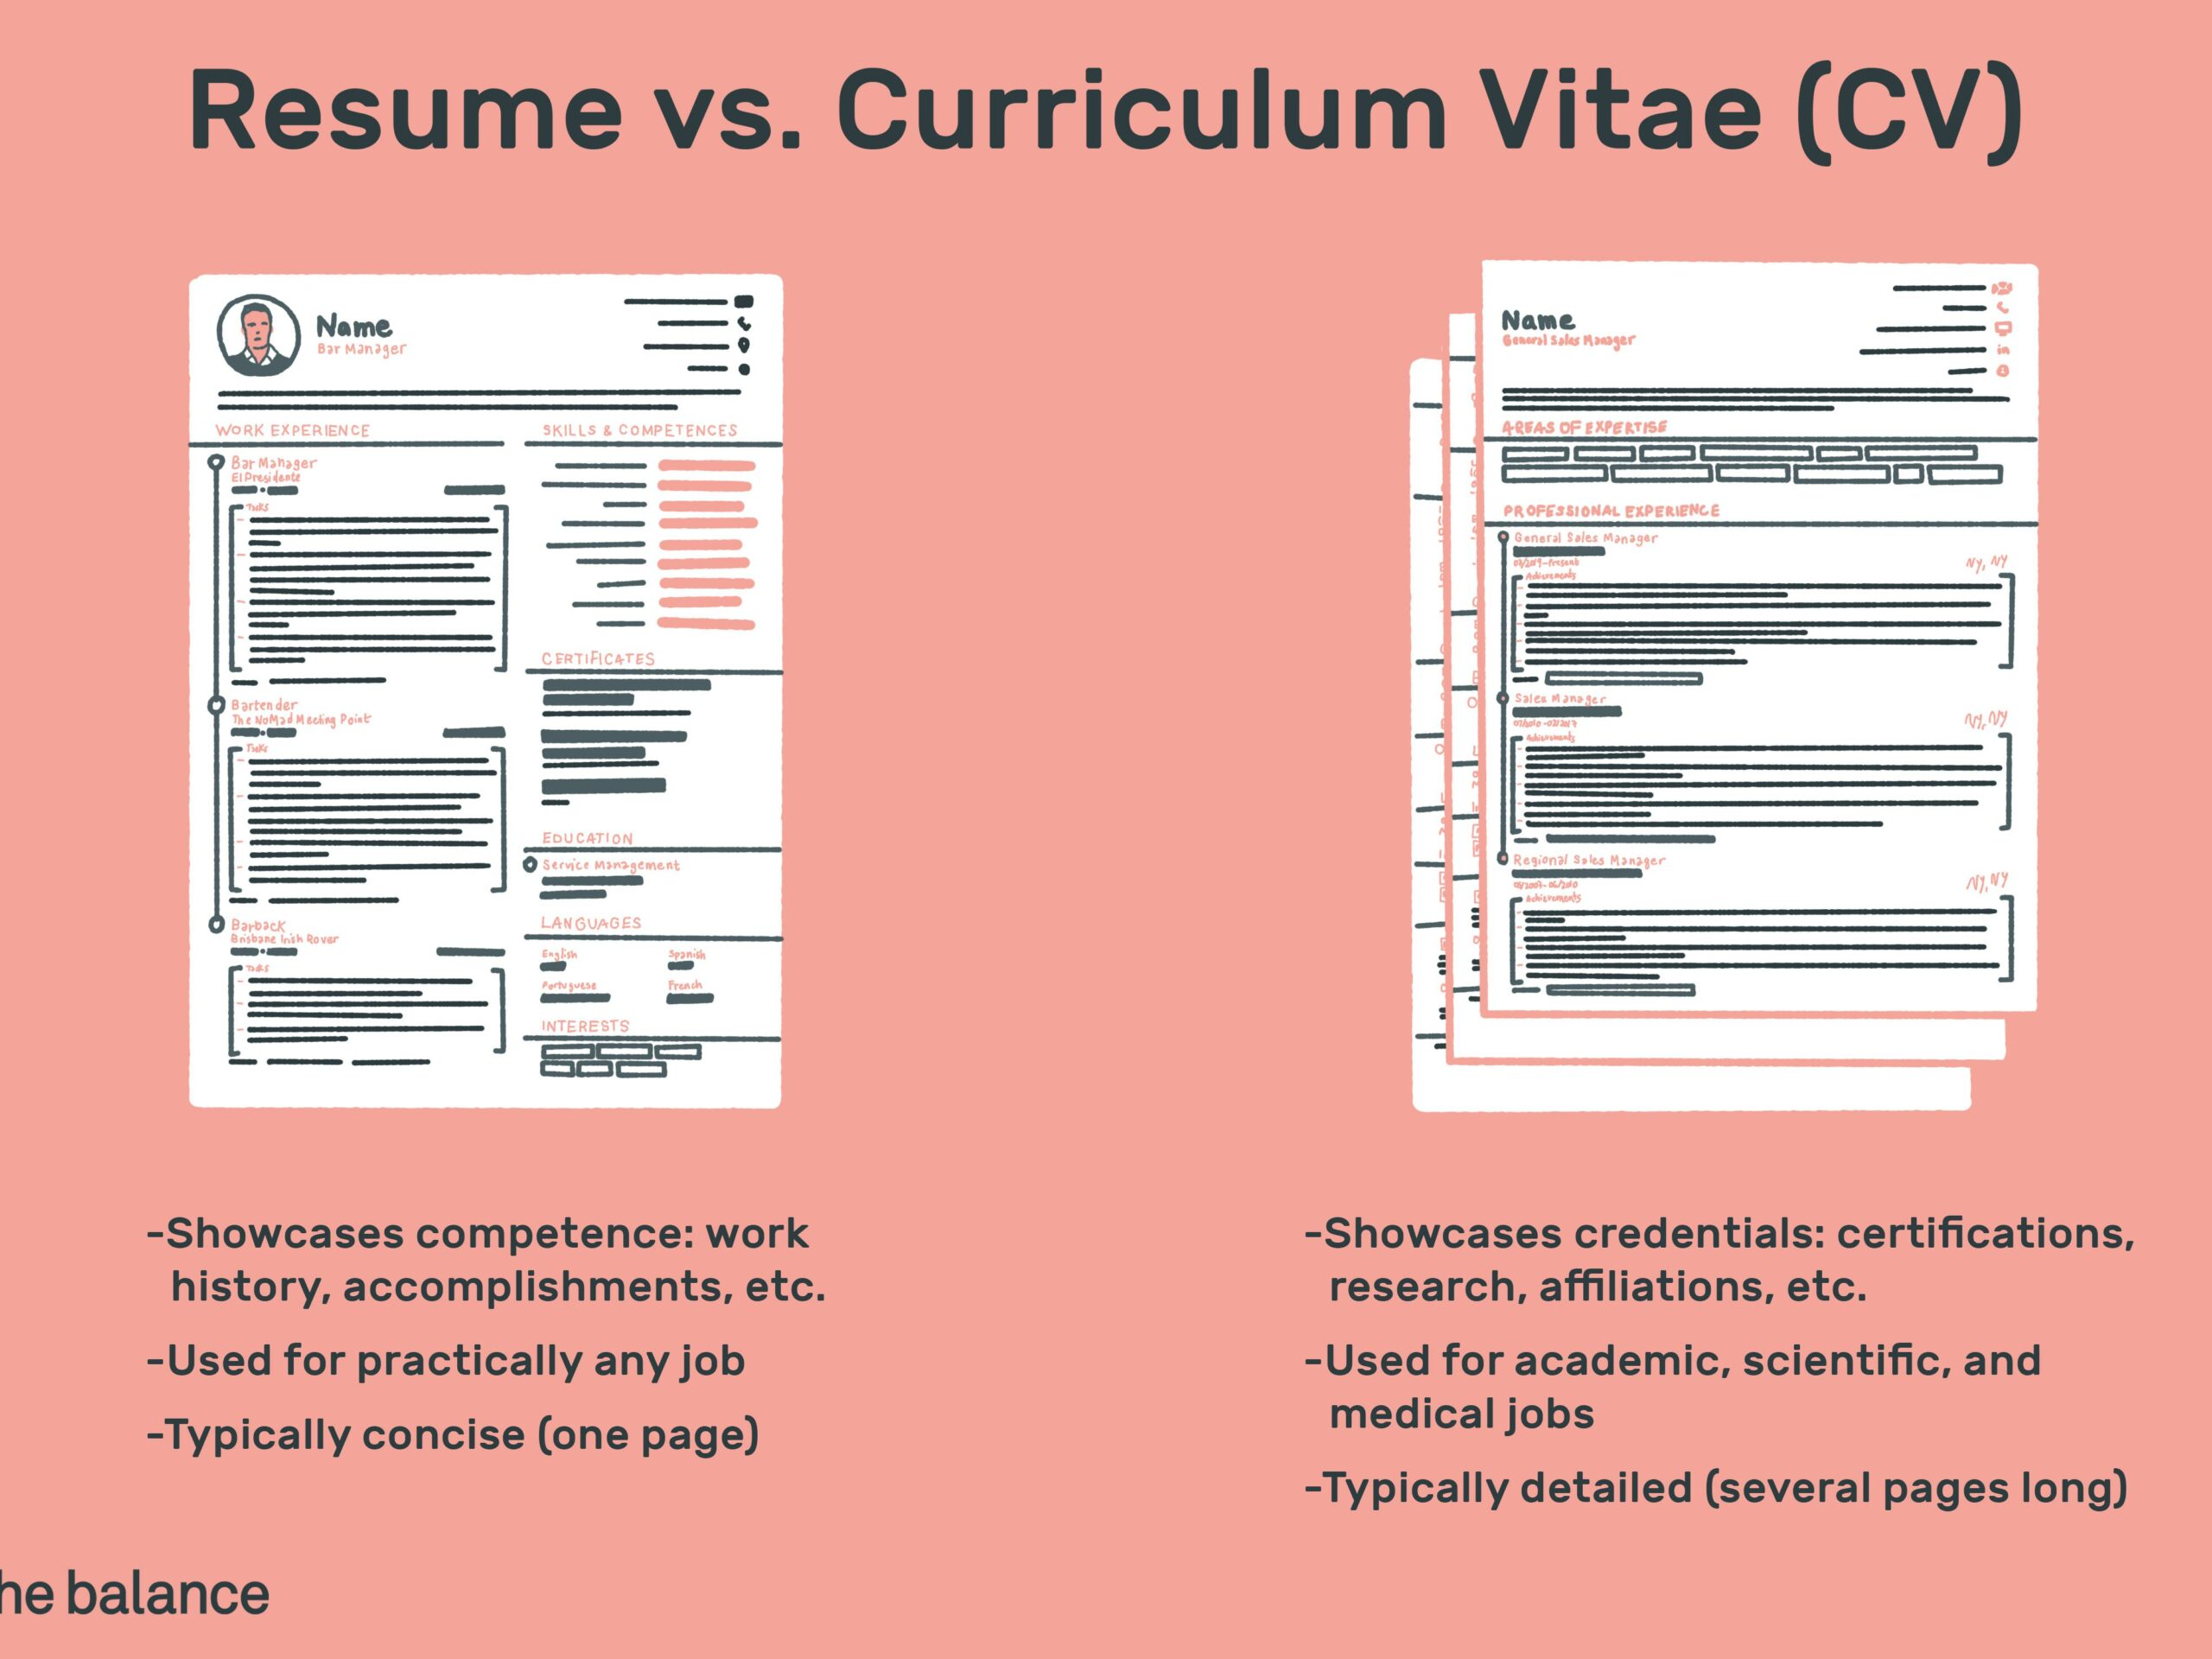 the difference between resume and curriculum vitae cv vs final levels of proficiency for Resume Curriculum Vitae And Resume